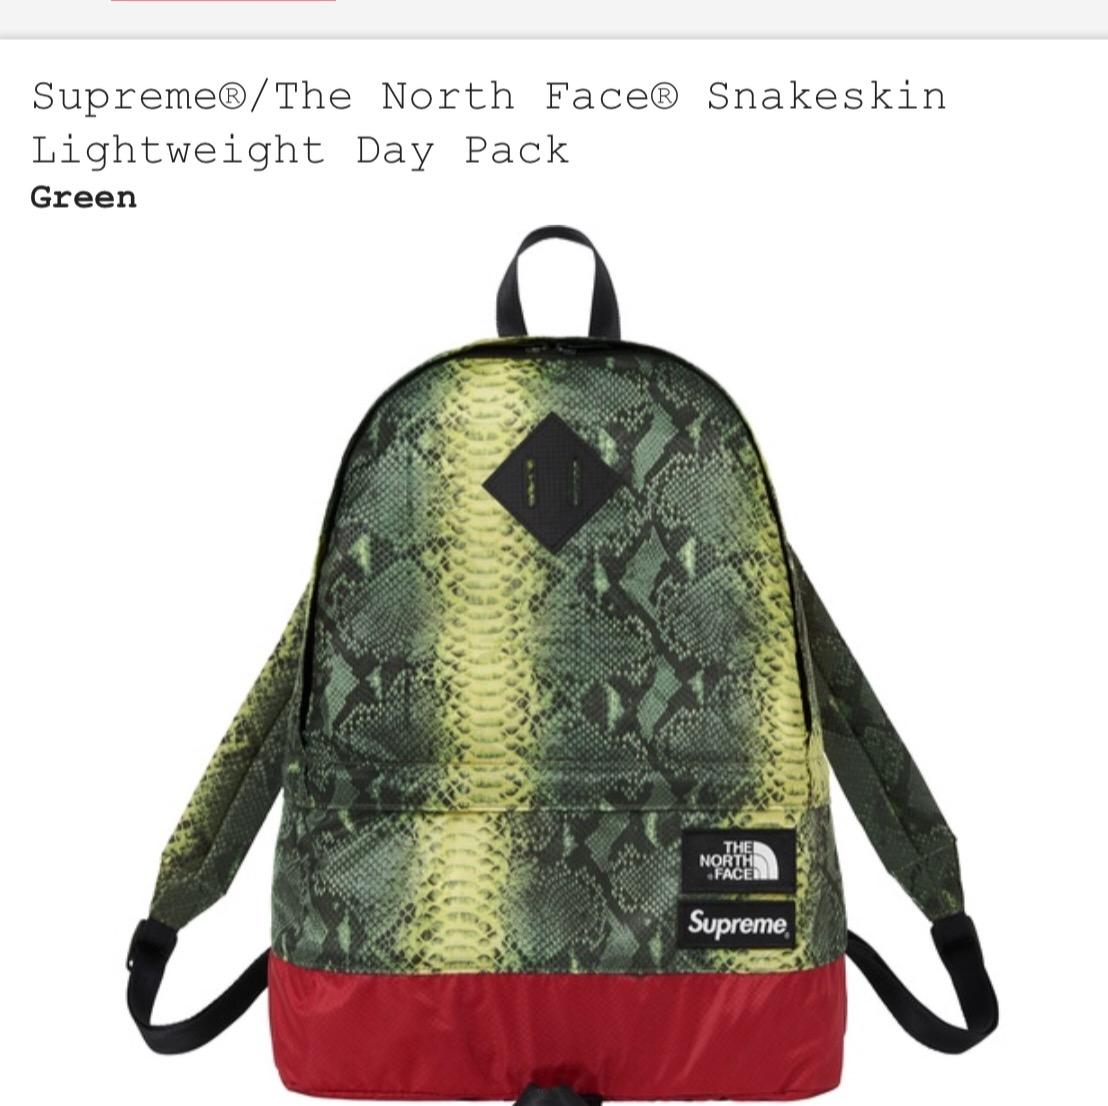 fdd77f75c Supreme The North Face Mountain Expedition Backpack Blue White - CEAGESP